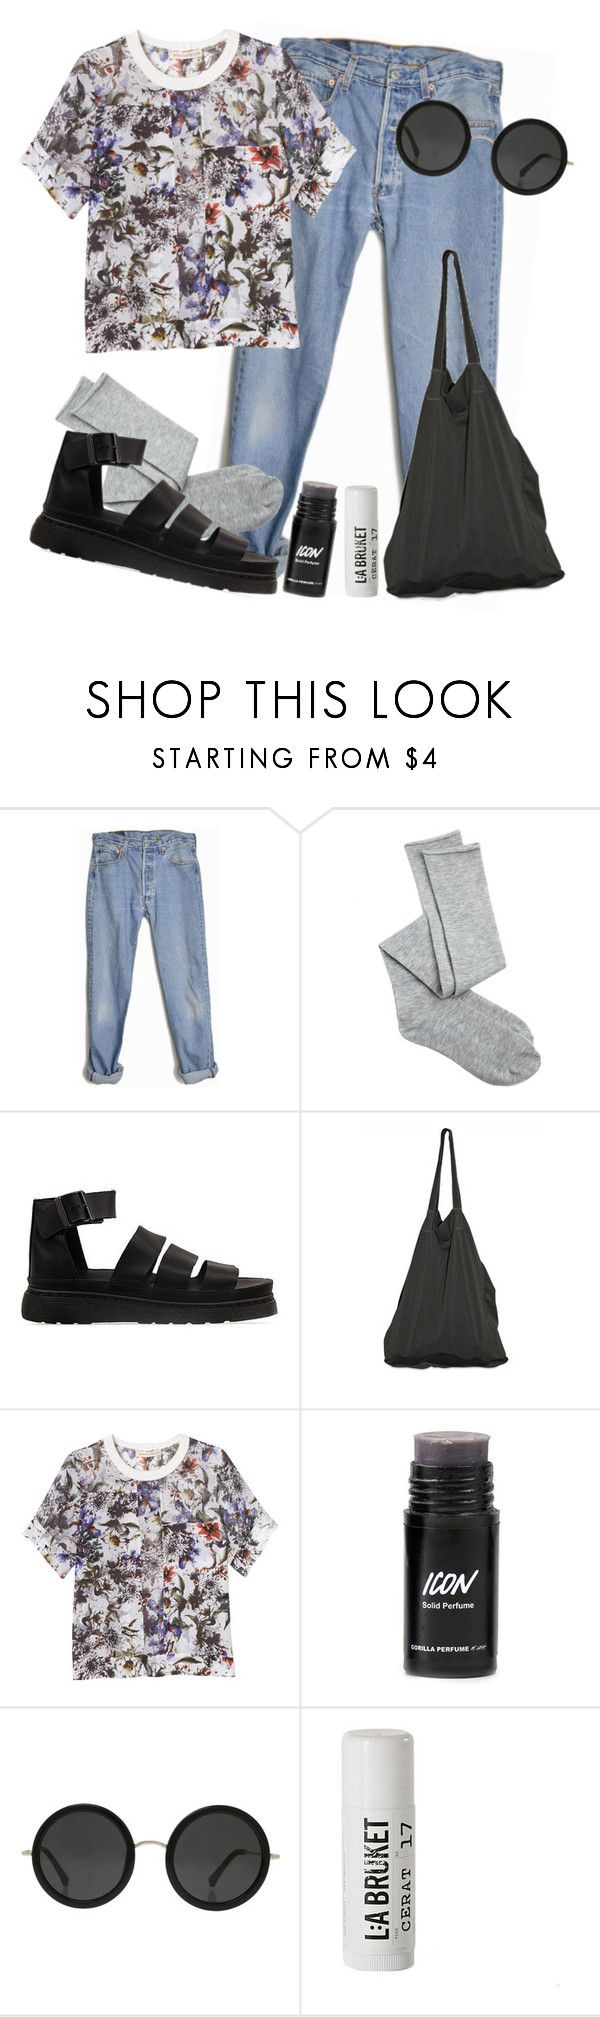 """""""#113"""" by collyn-luca on Polyvore featuring Levi's, Charlotte Russe, Dr. Martens, Laneus, Rebecca Taylor, The Row and L:A Bruket"""